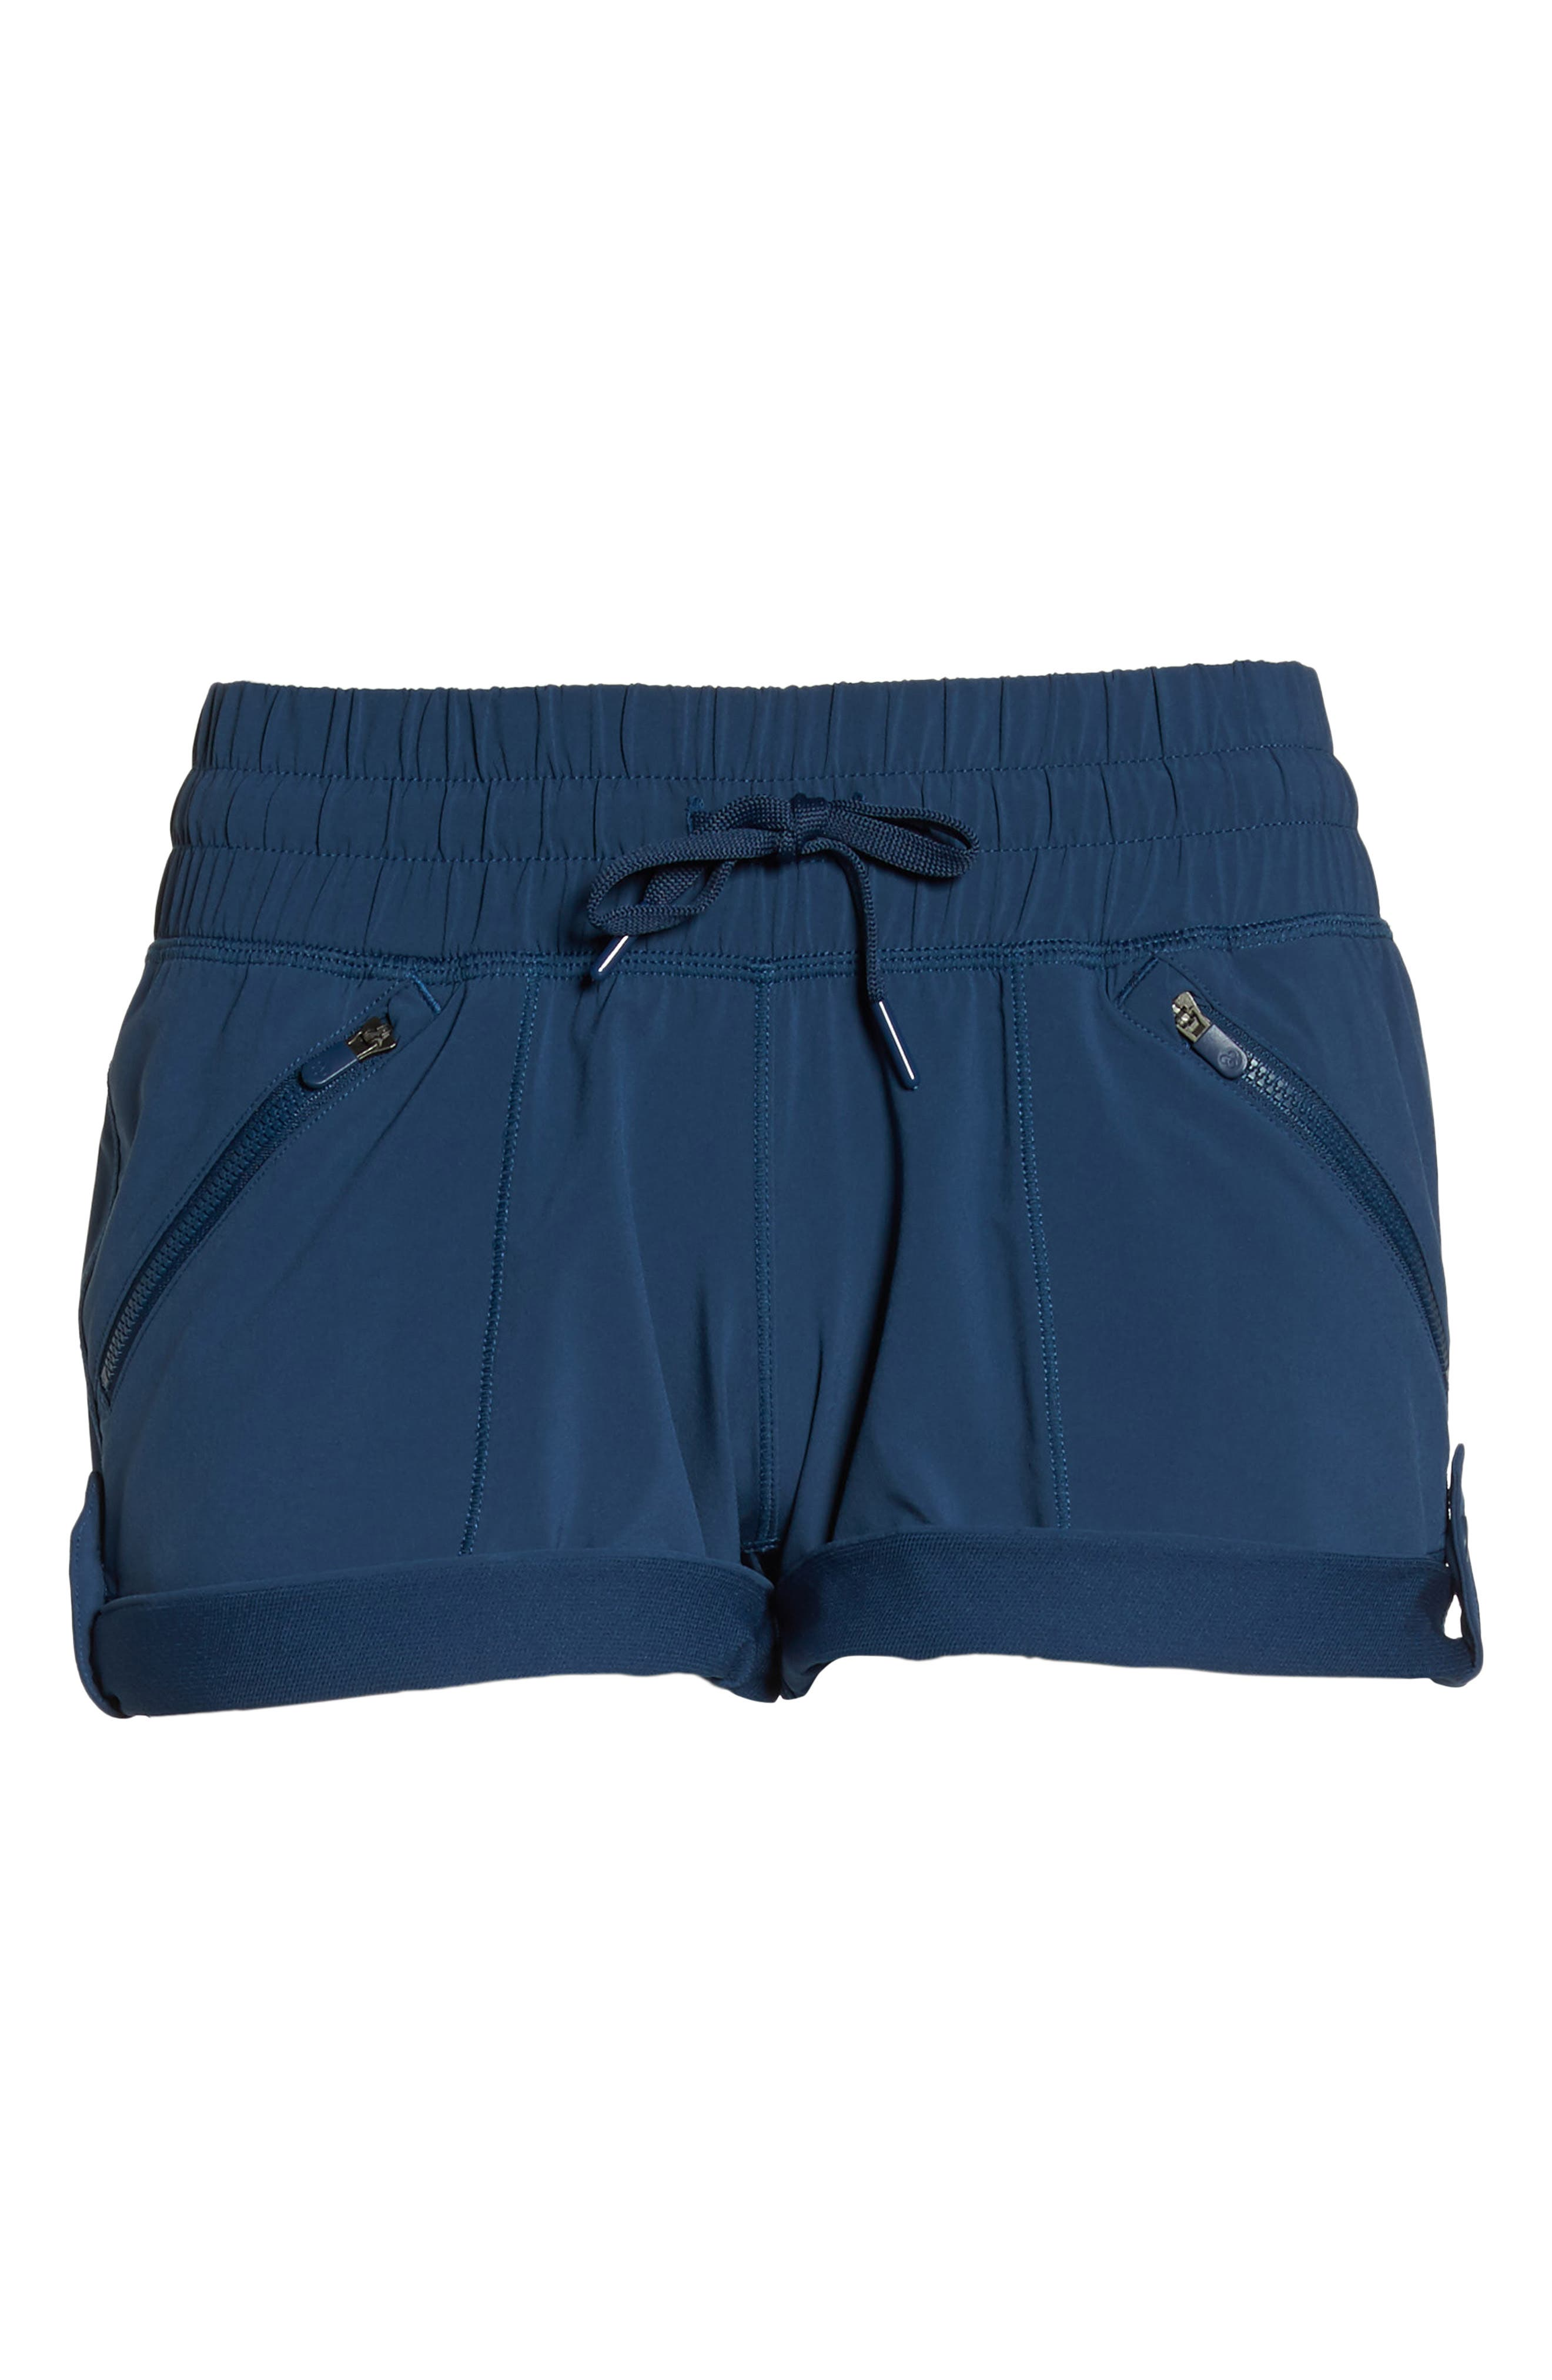 Switchback Shorts,                             Alternate thumbnail 7, color,                             Blue Insignia